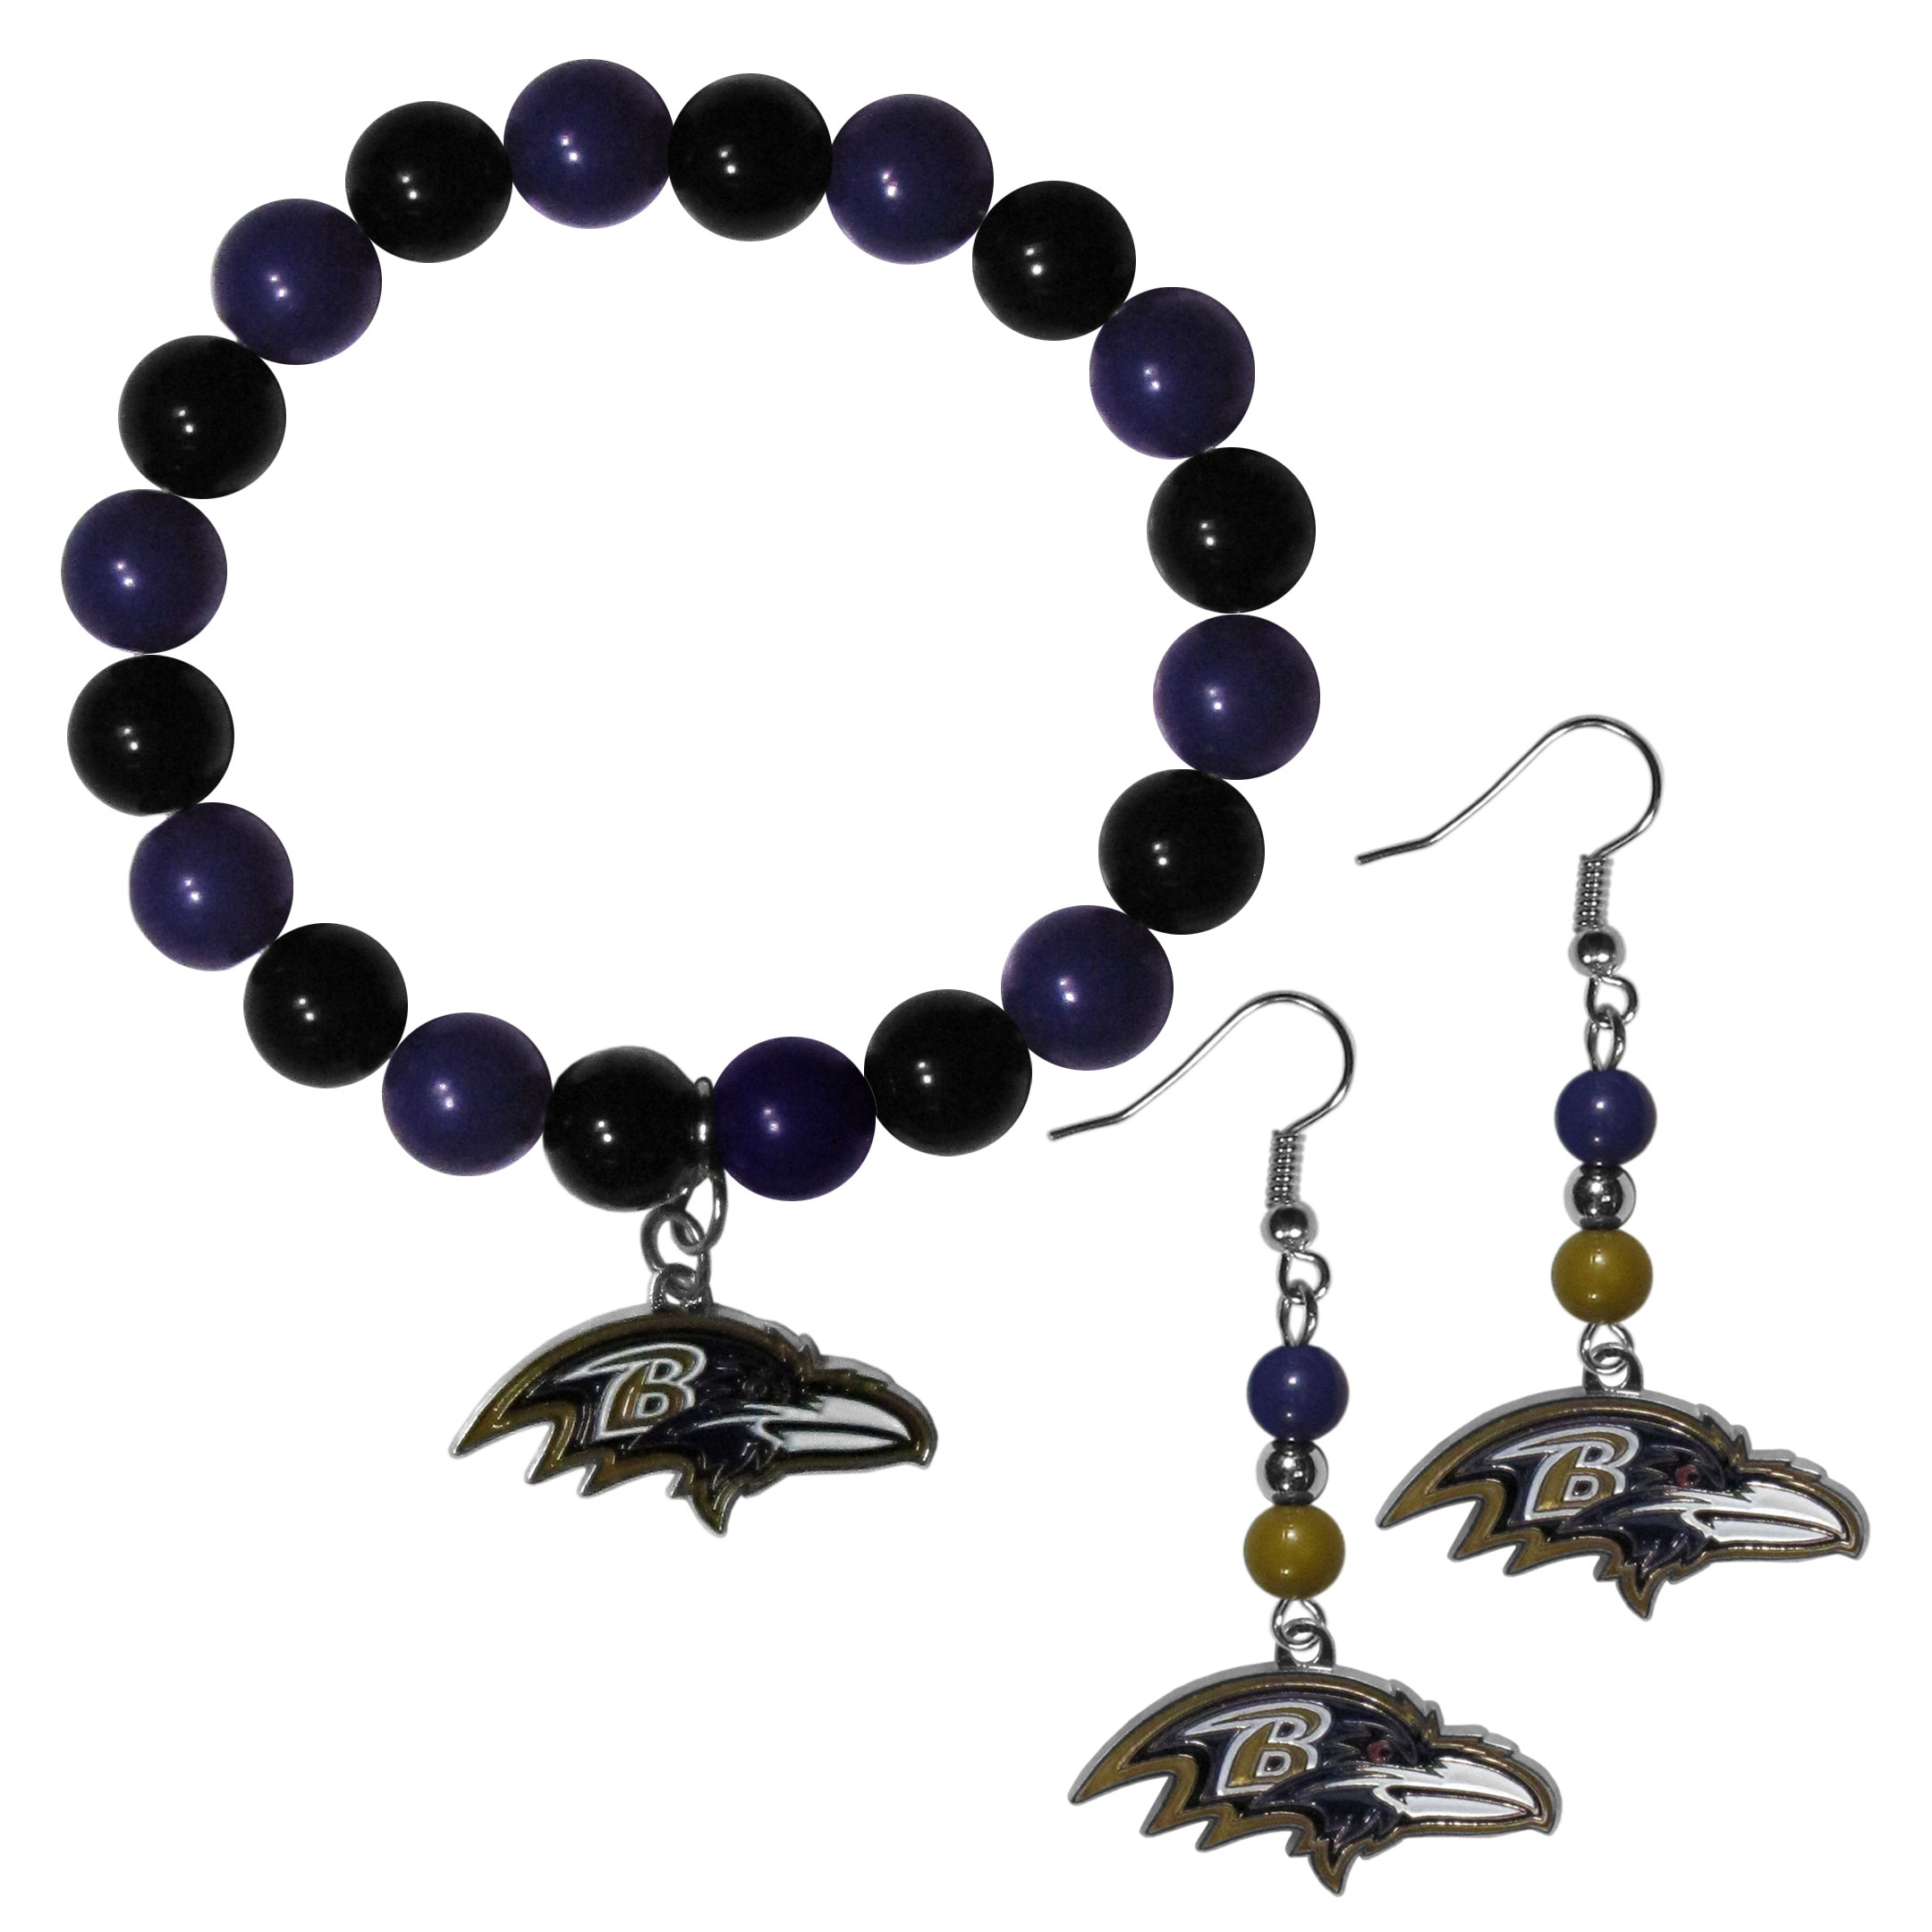 Baltimore Ravens Fan Bead Earrings and Bracelet Set - This fun and colorful Baltimore Ravens fan bead jewelry set is fun and casual with eye-catching beads in bright team colors. The fashionable dangle earrings feature a team colored beads that drop down to a carved and enameled charm. The stretch bracelet has larger matching beads that make a striking statement and have a matching team charm. These sassy yet sporty jewelry pieces make a perfect gift for any female fan. Spice up your game-day outfit with these fun colorful earrings and bracelet that are also cute enough for any day.